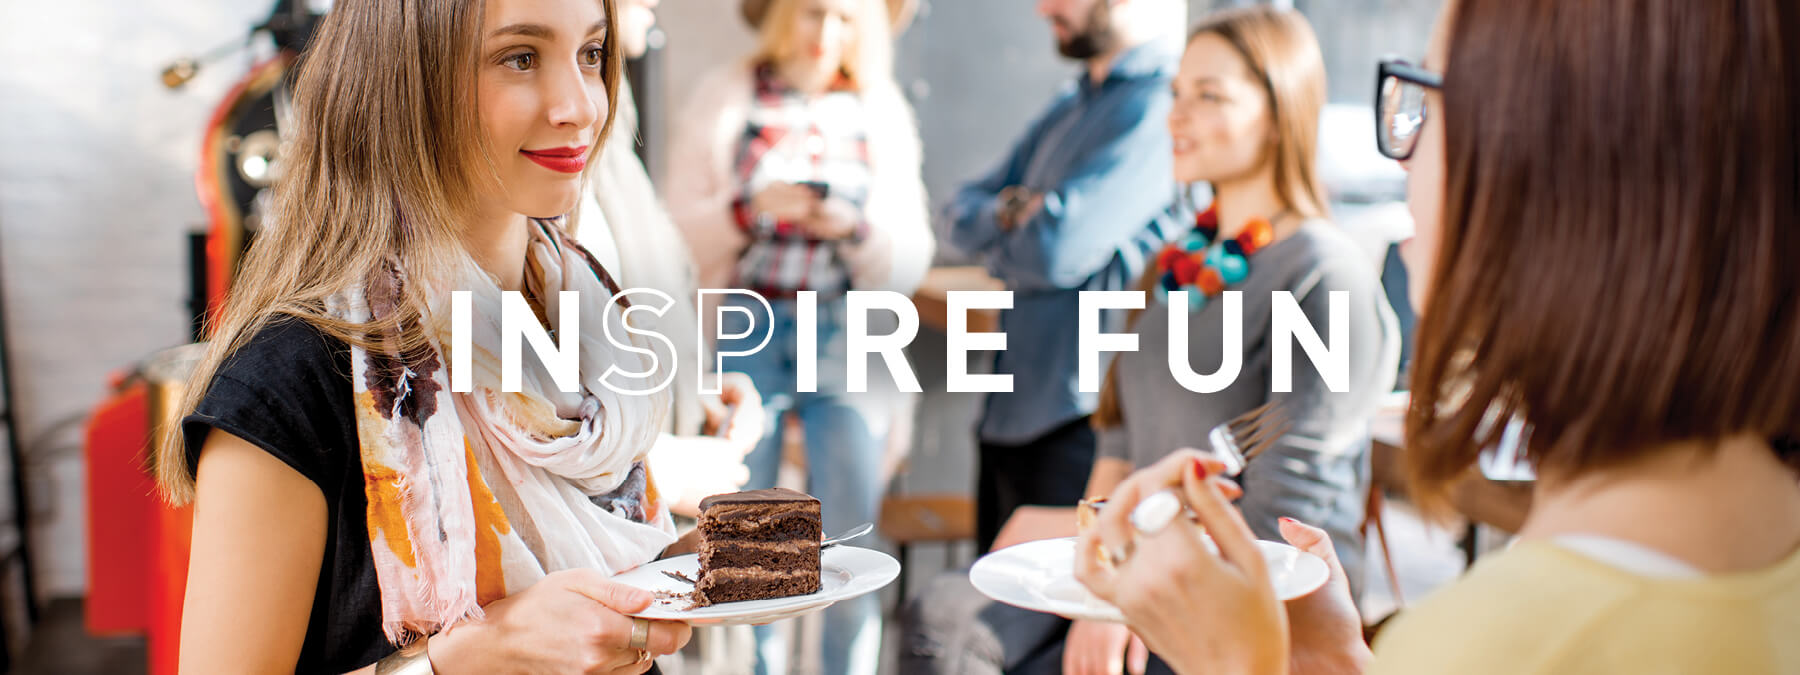 INSPIRE fun - group of people talking